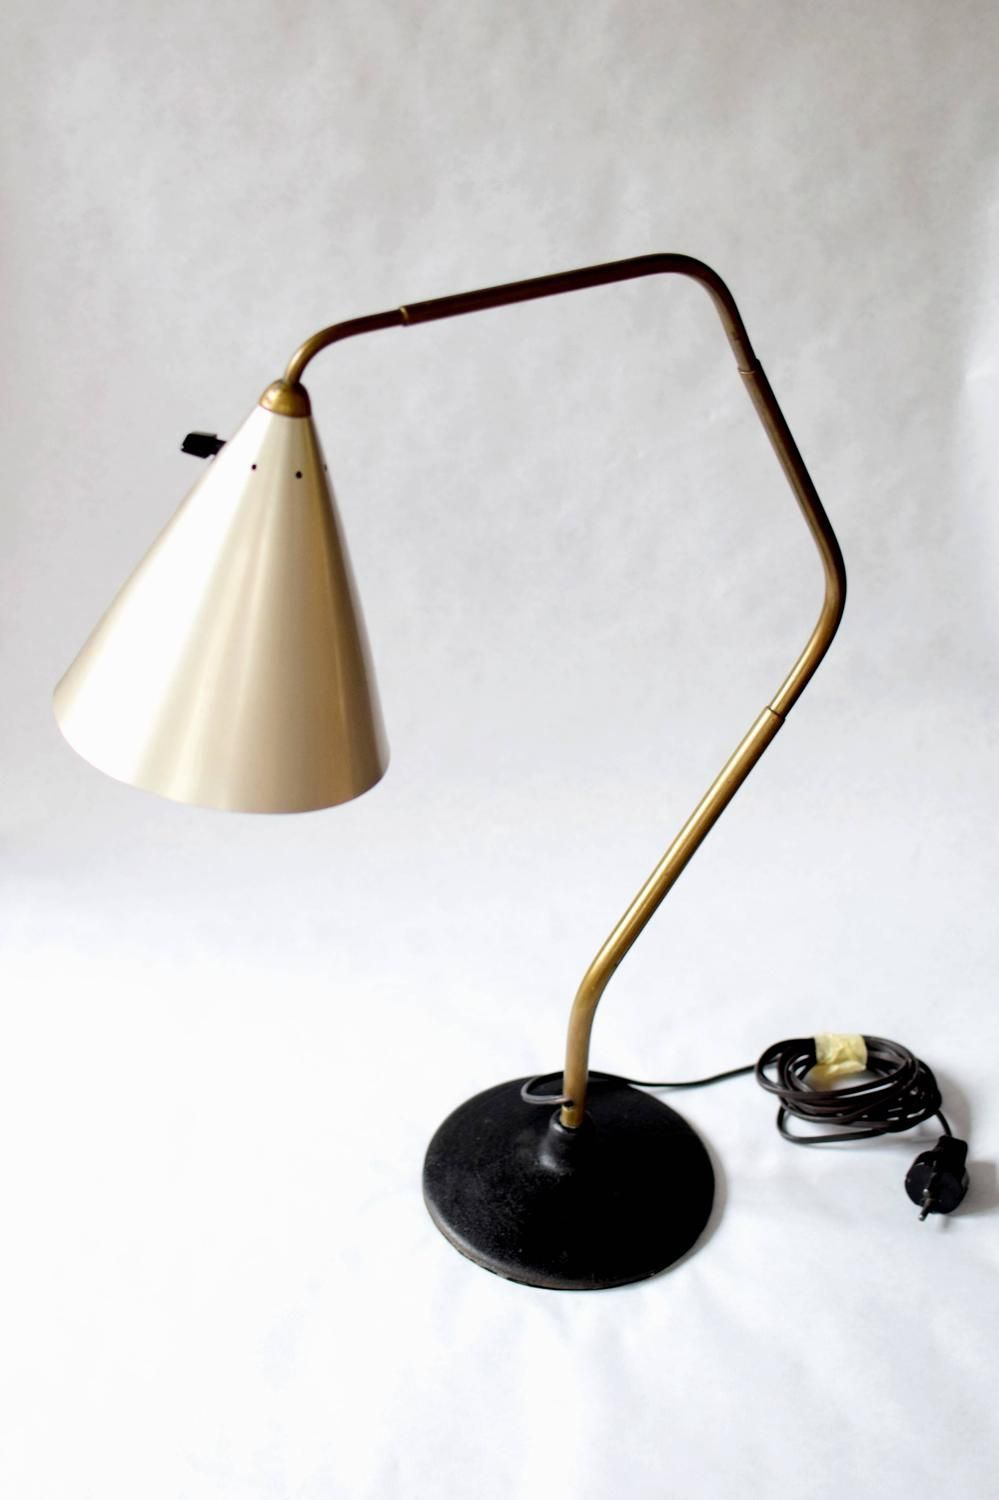 karl hagenauer large prototype flamingo table lamp - Lamp Bureau Ado